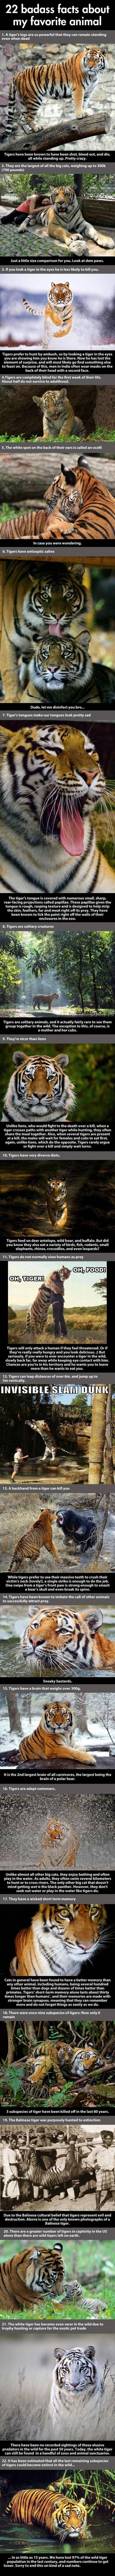 Tiger Facts ~ donate to wildlife conservation to save these precious creatures from extinction!